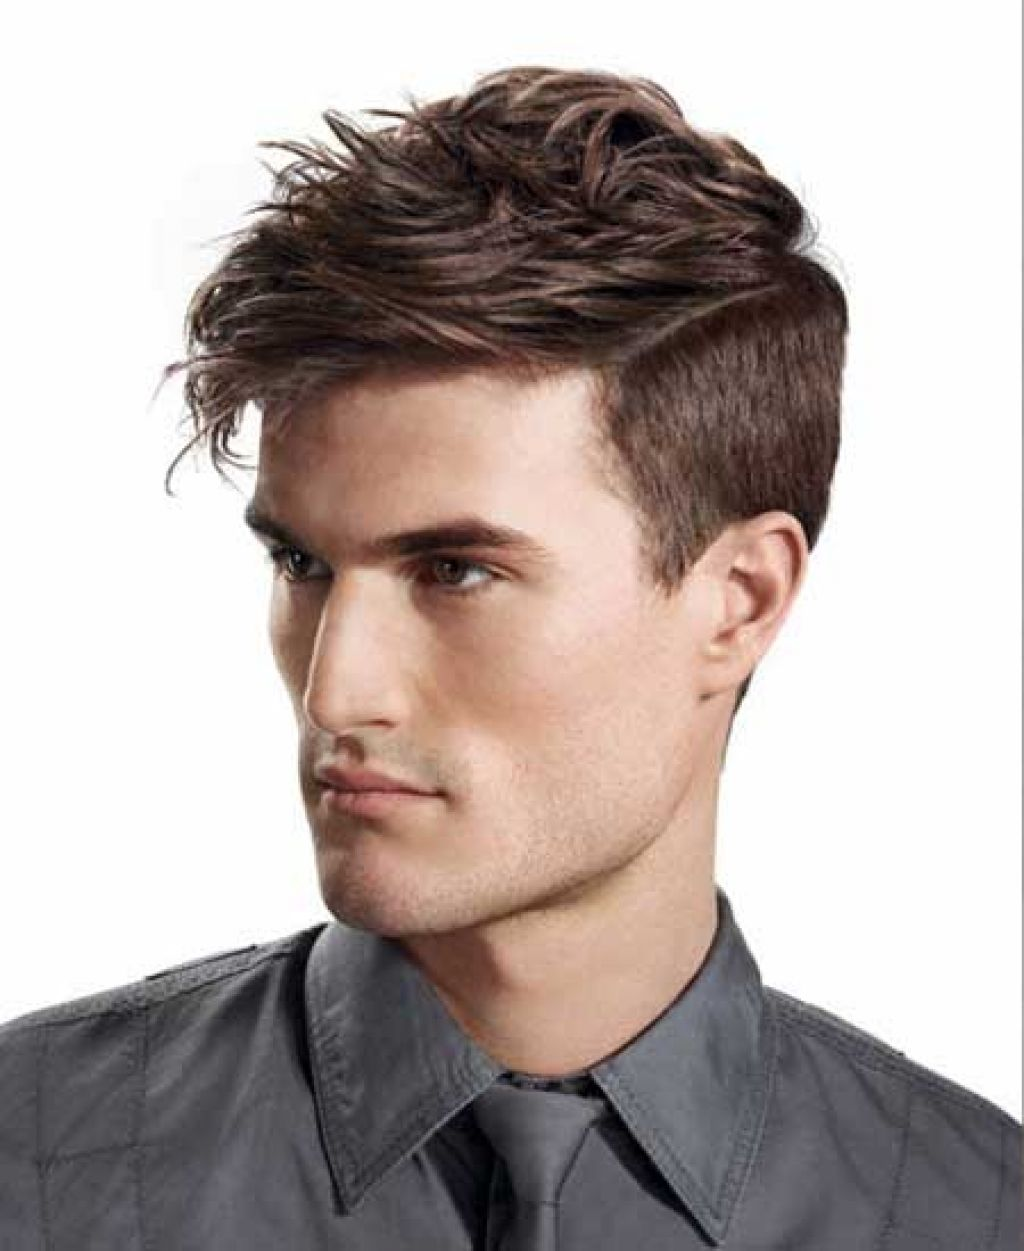 Boys Hairstyles Ideas To Look Super Cool The Xerxes Boy Haircuts Long Hipster Hairstyles Boy Hairstyles